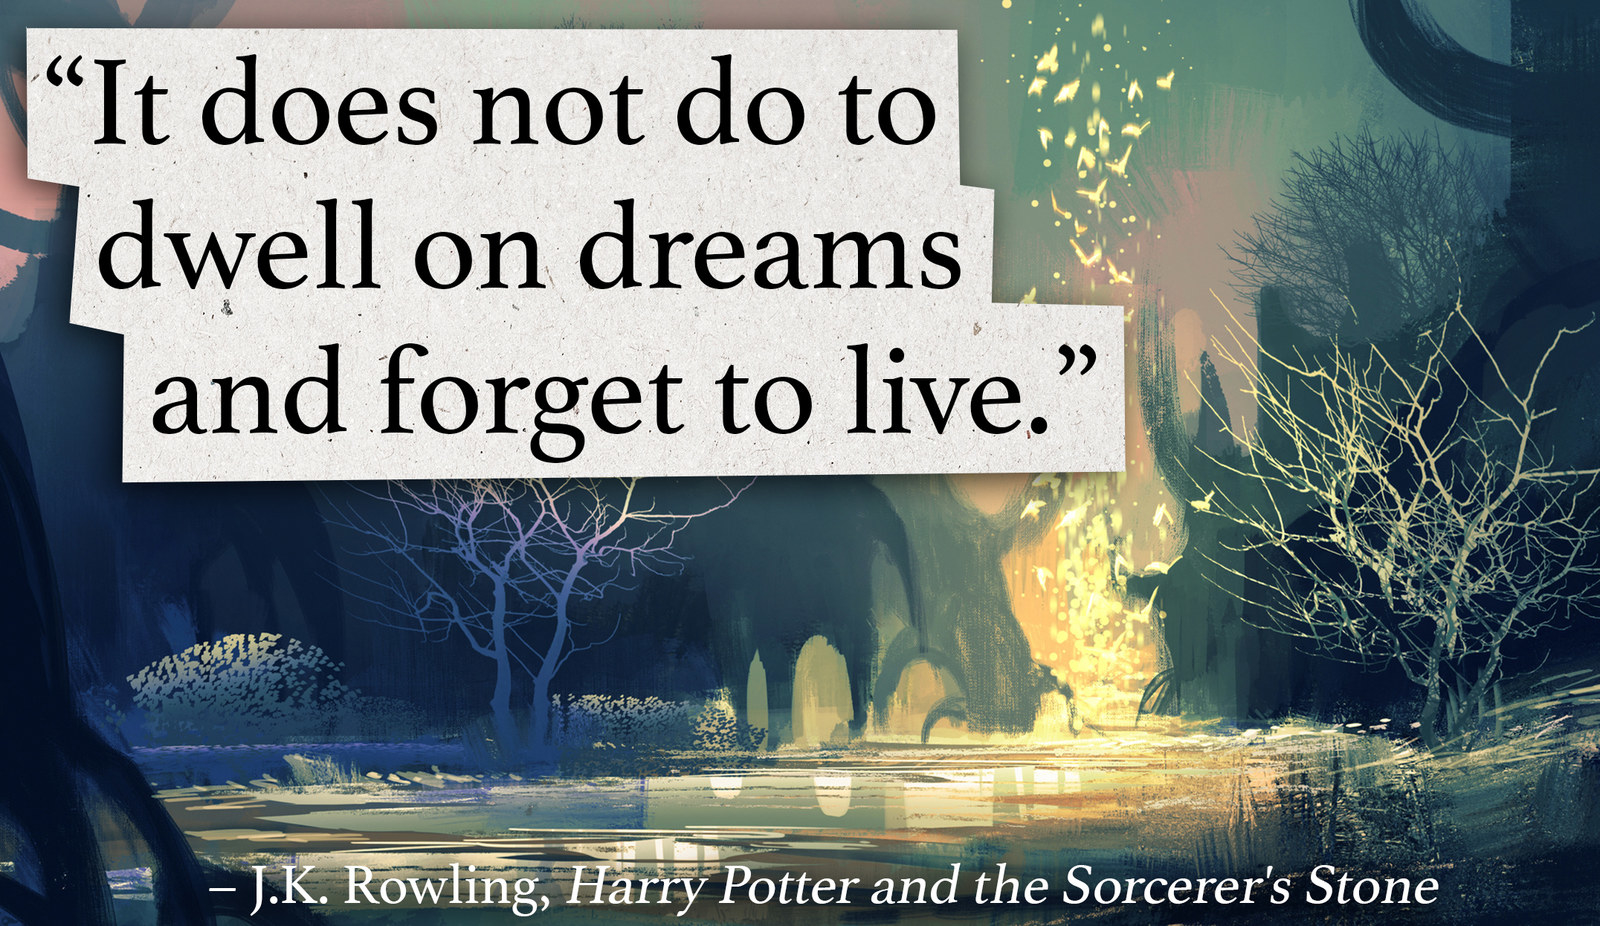 26 Of The Most Inspirational Lines In Literature